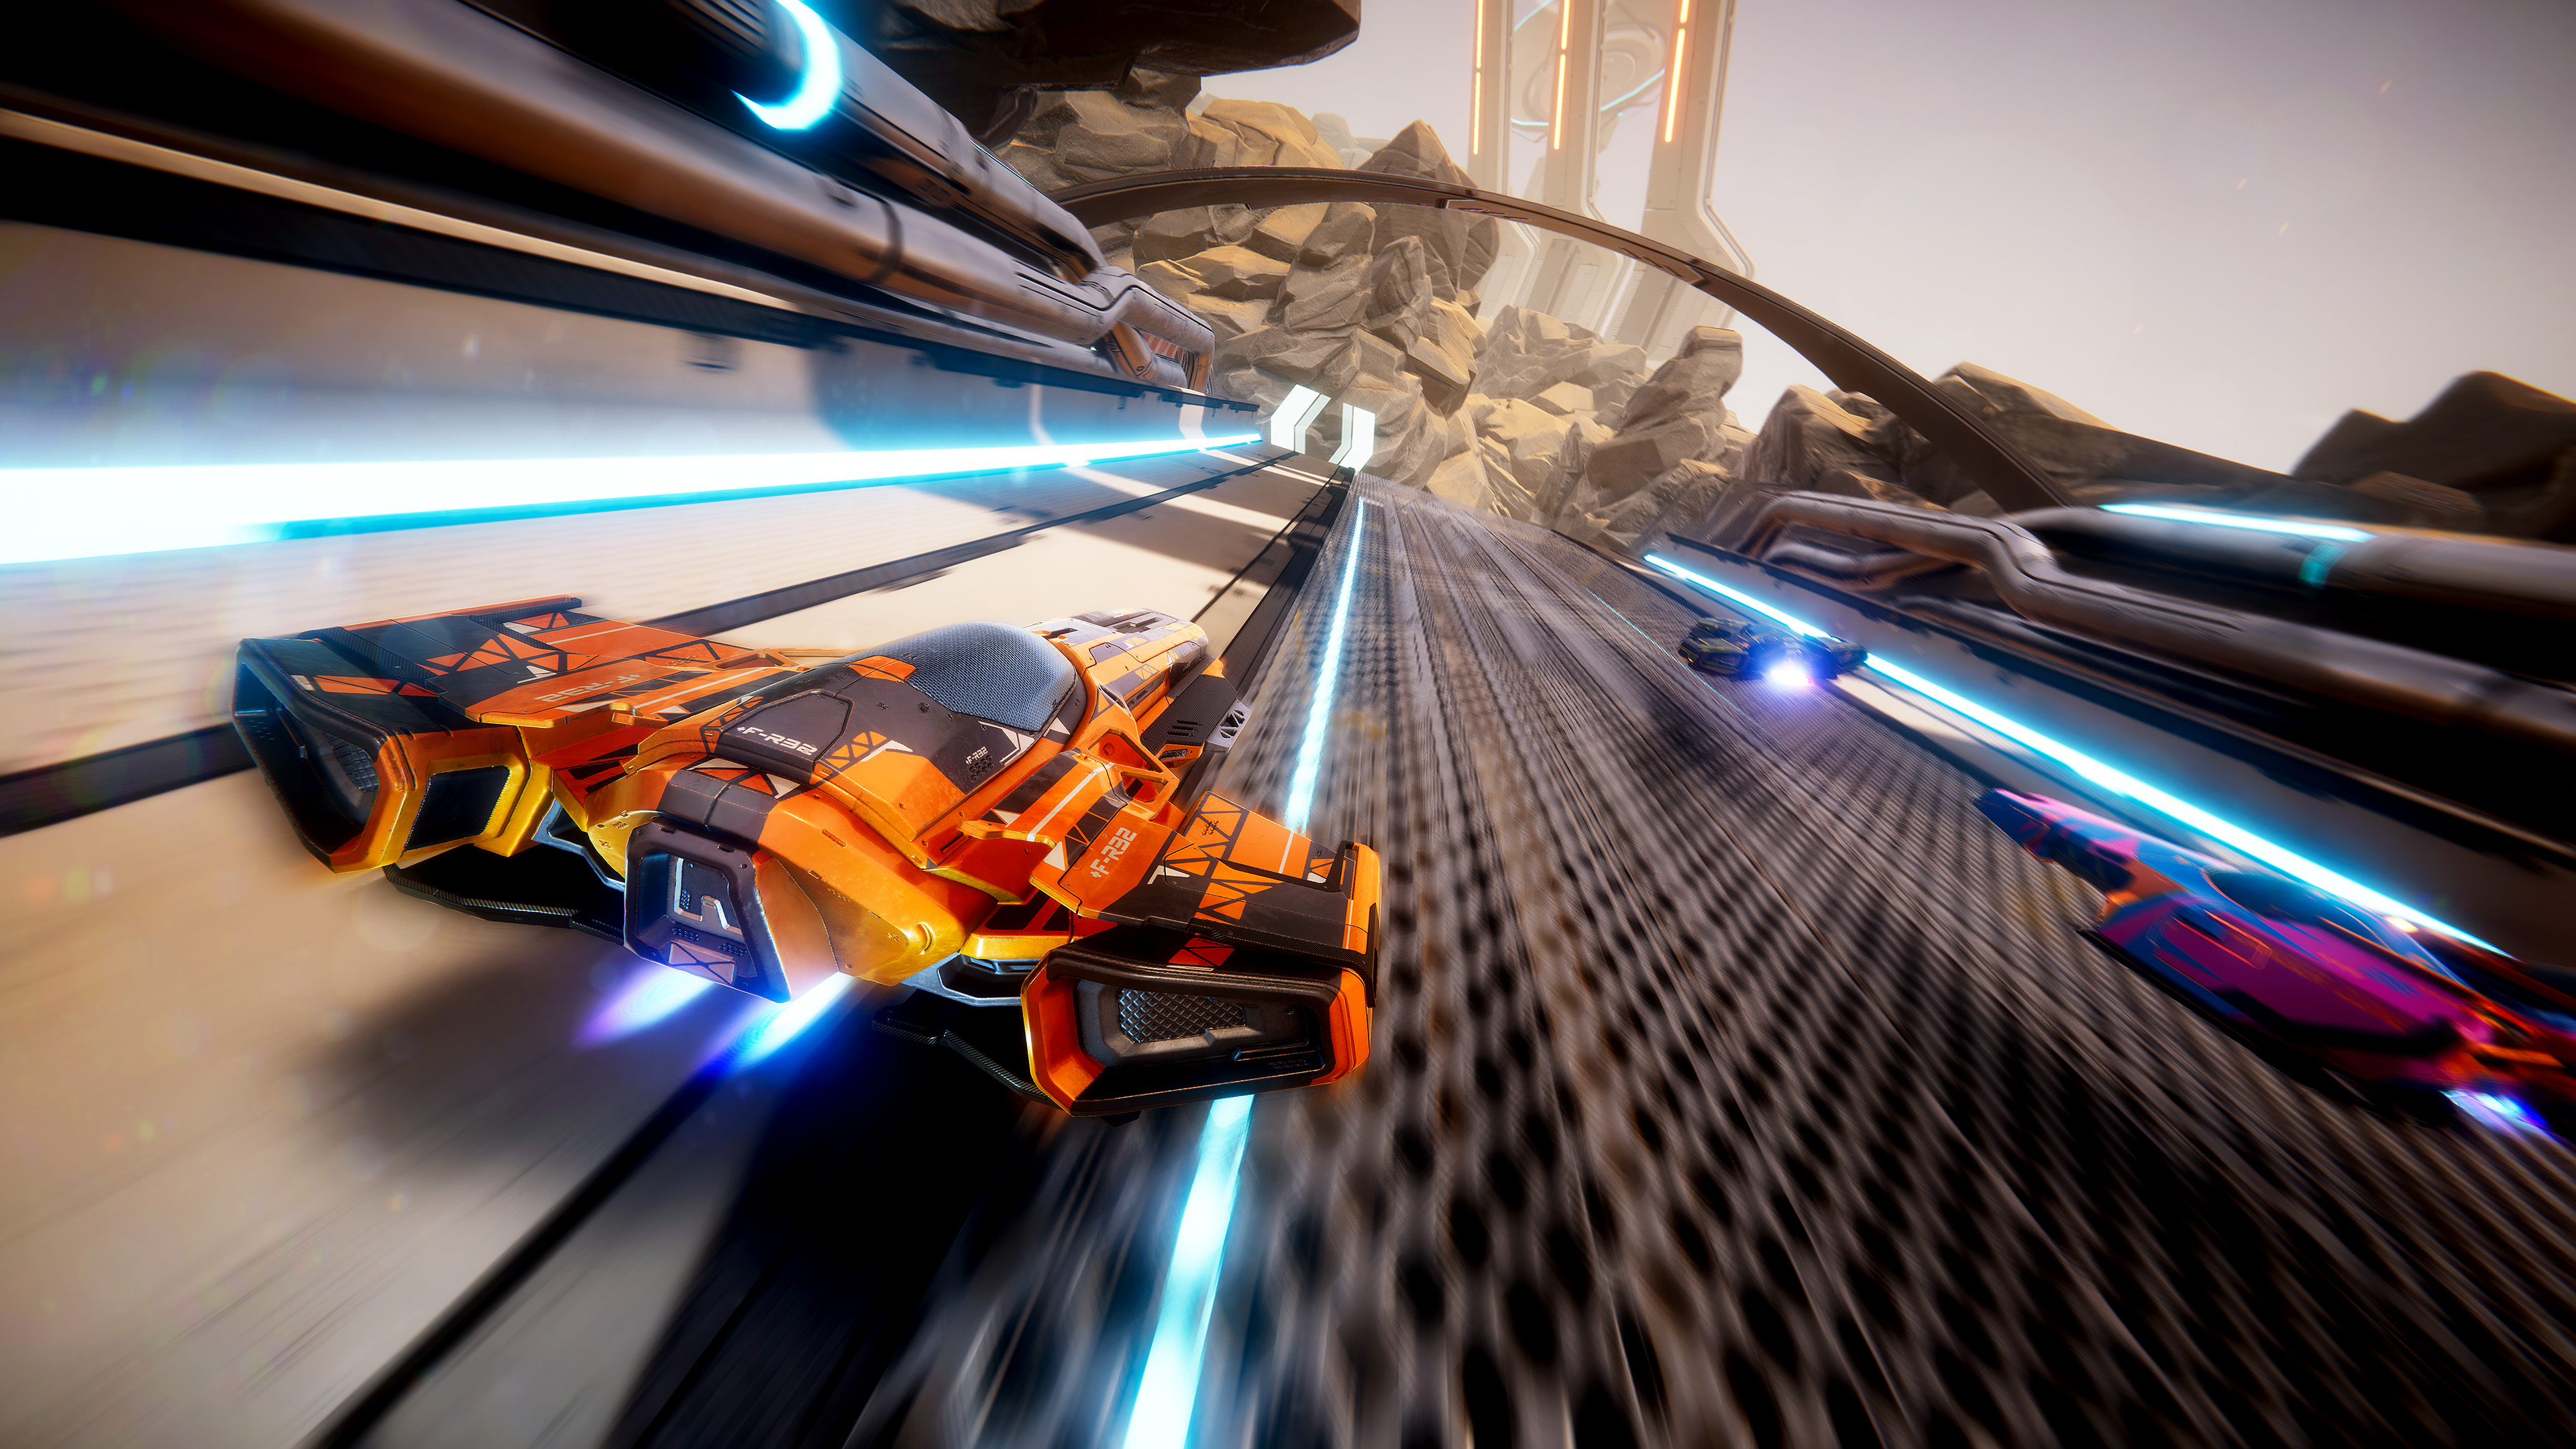 Antigraviator, a futuristic race game, is the first game from start-up Cybernetic Walrus